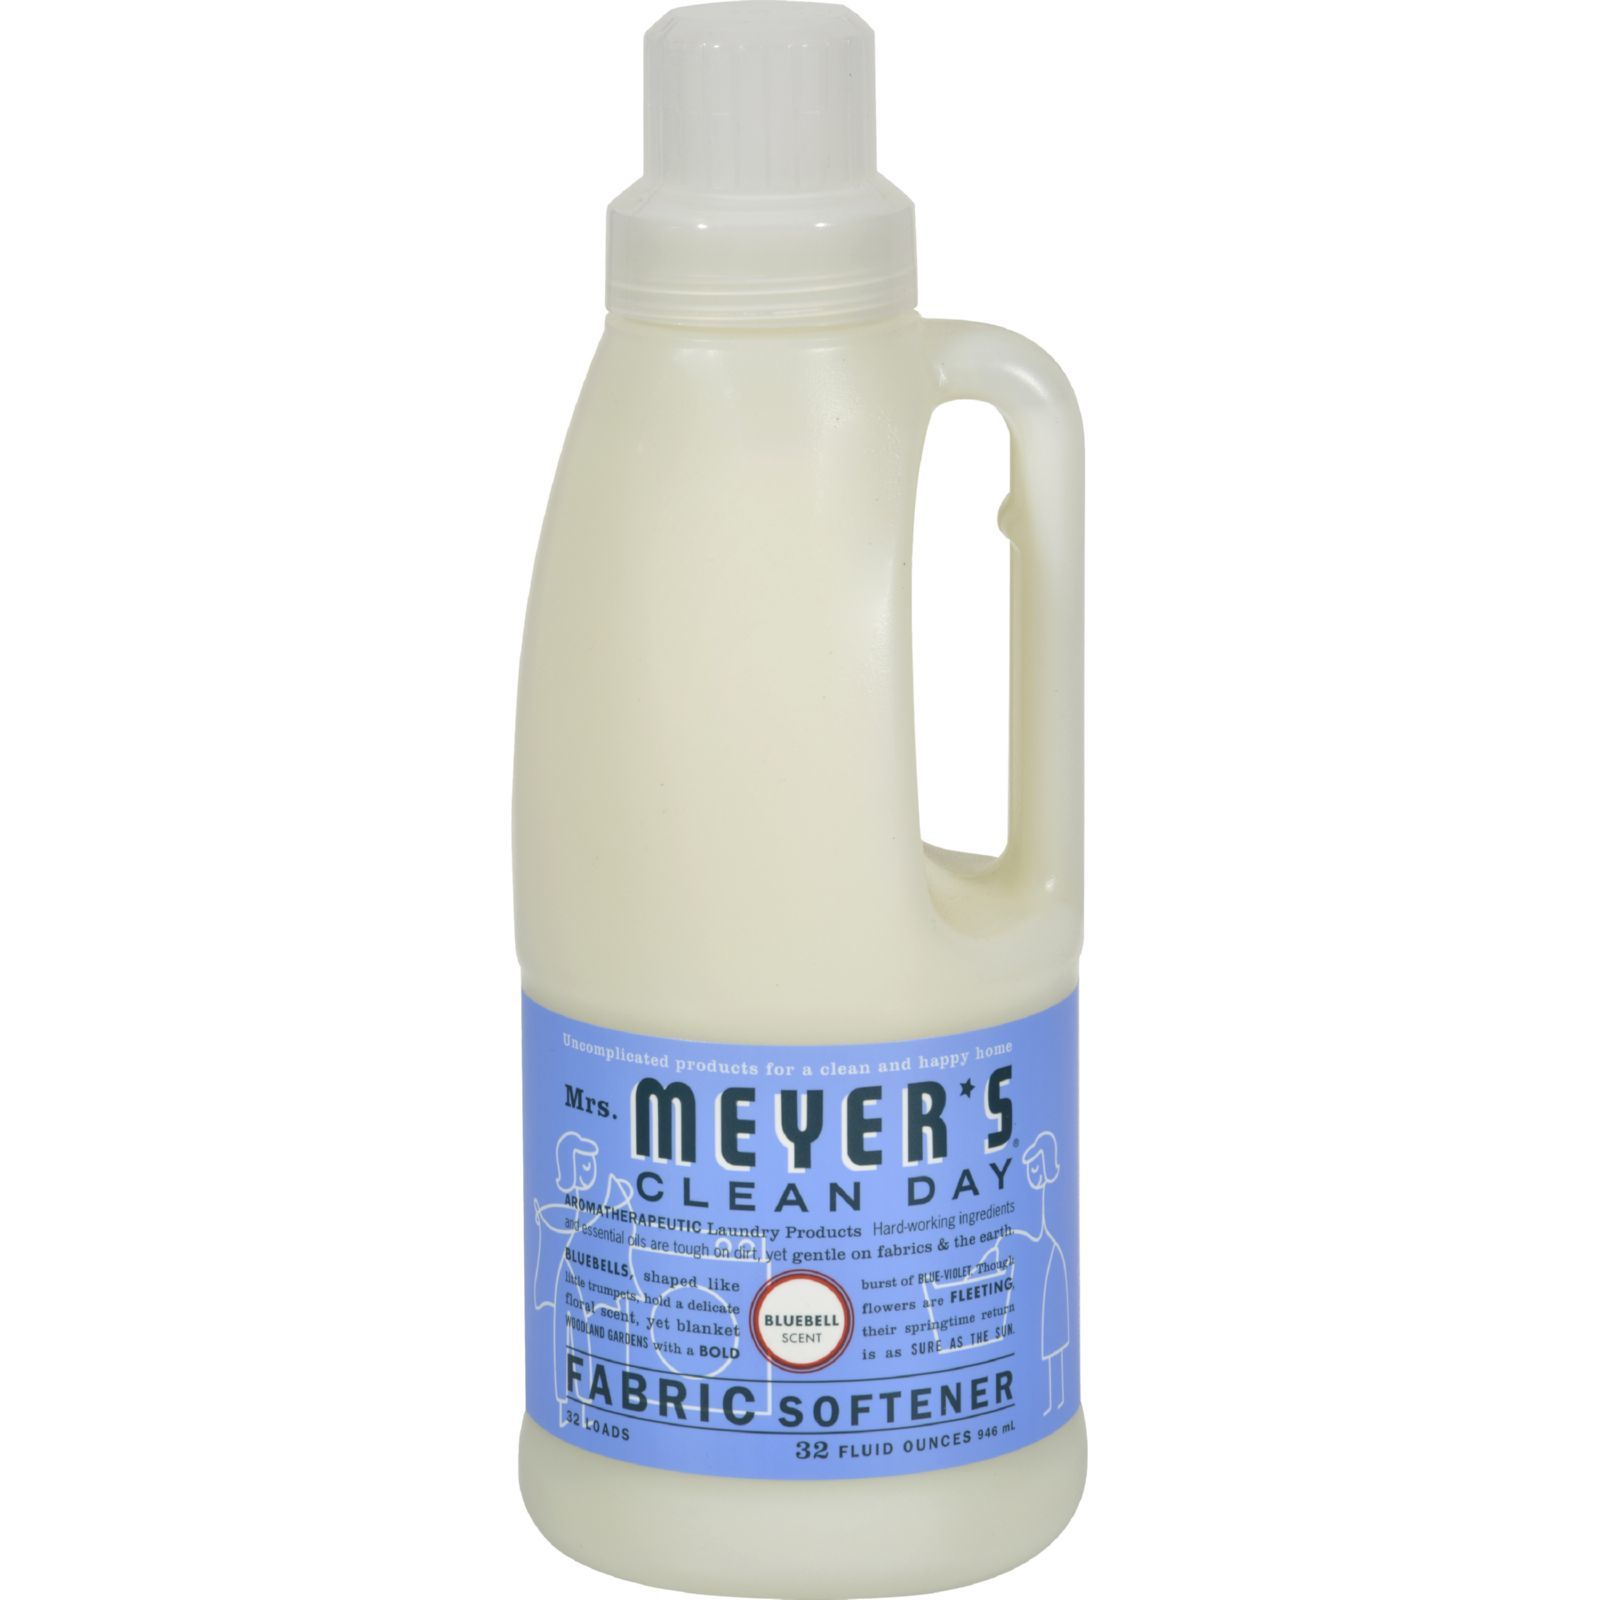 Mrs. Meyer's Clean Day - Fabric Softener - Bluebell - Case of 6 - 32 oz